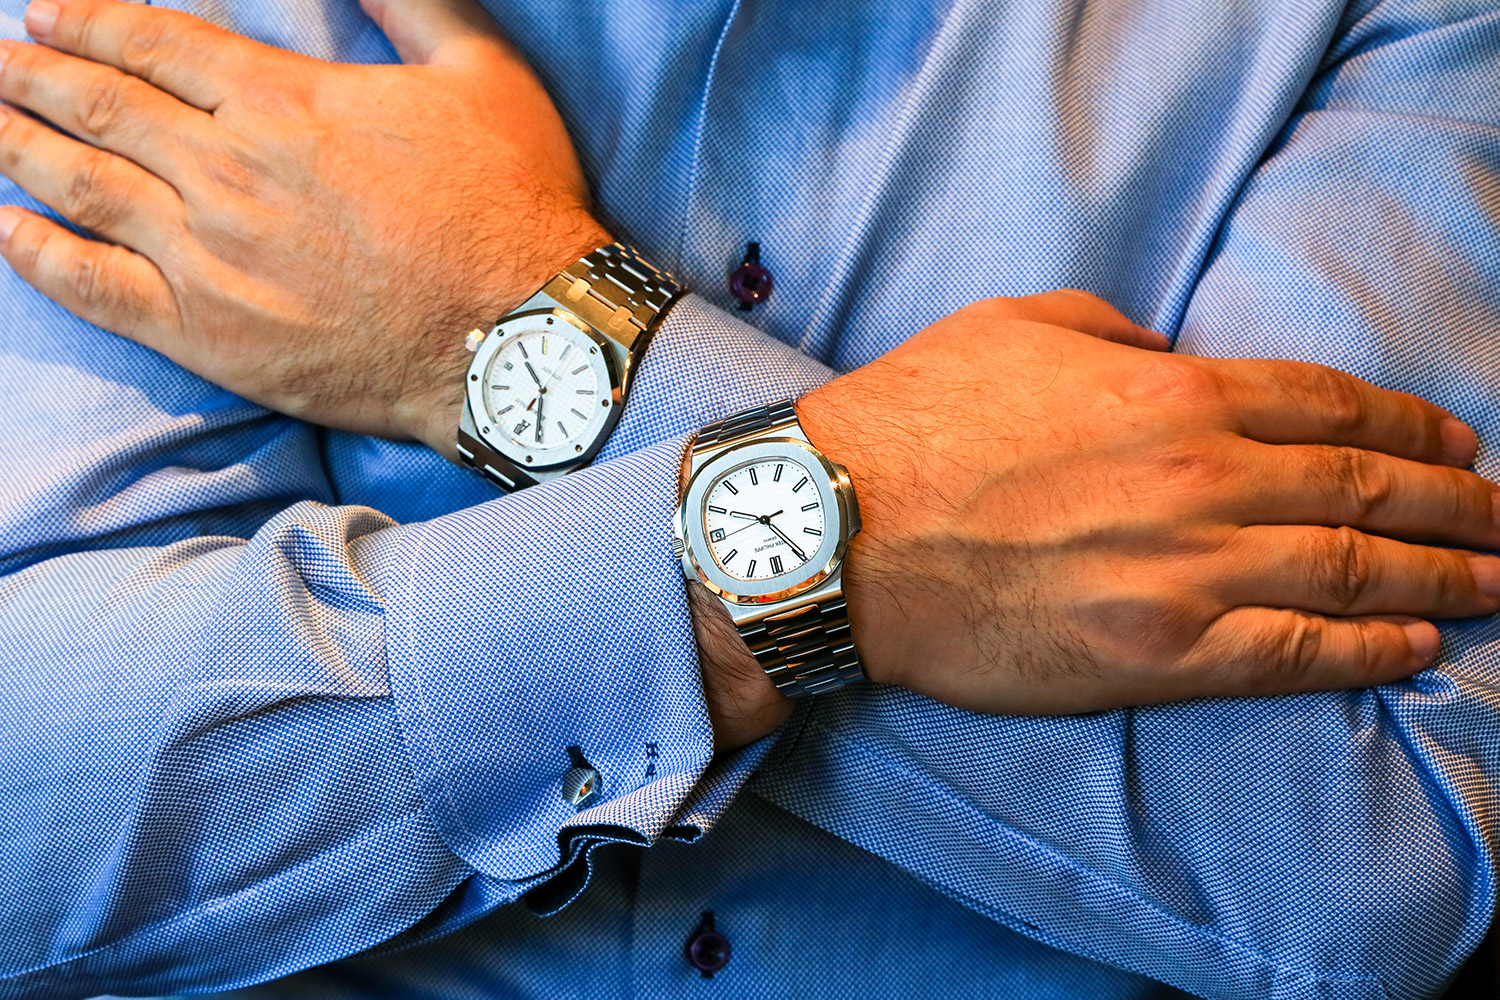 Photo Report: The Watches At Our Brussels Lunch - ATELIER DE GRIFF